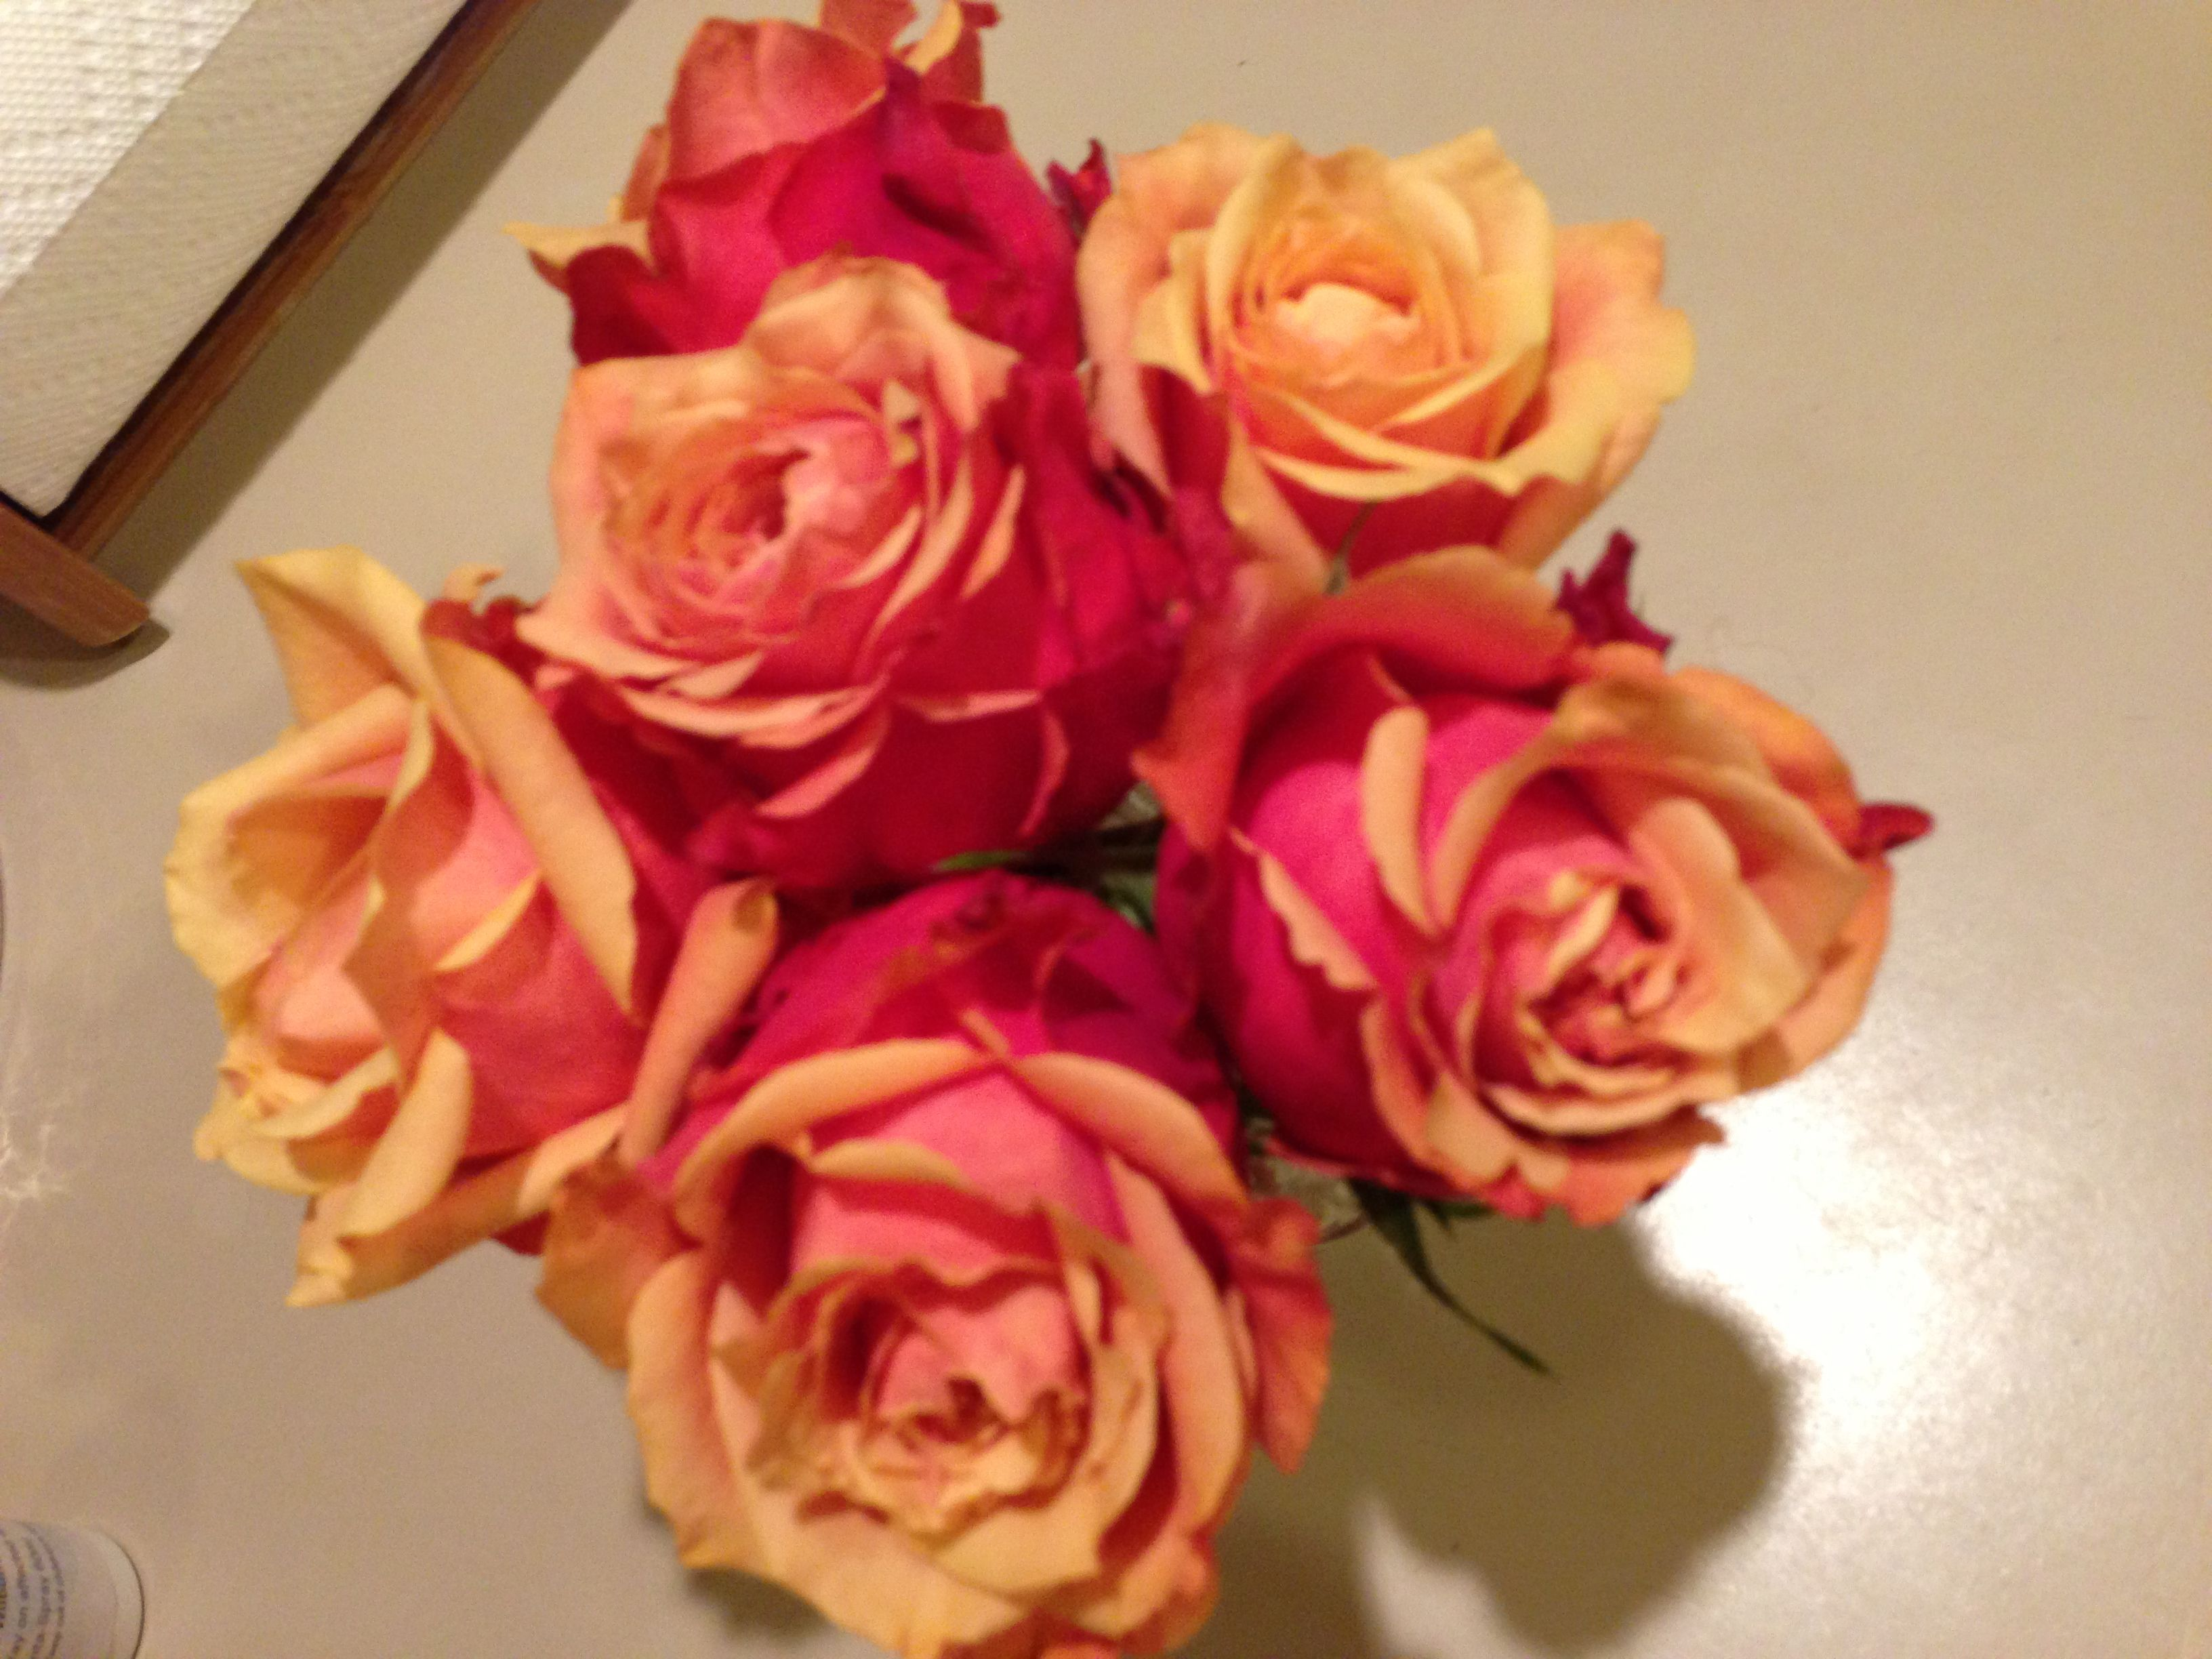 Love all the colors in these roses.